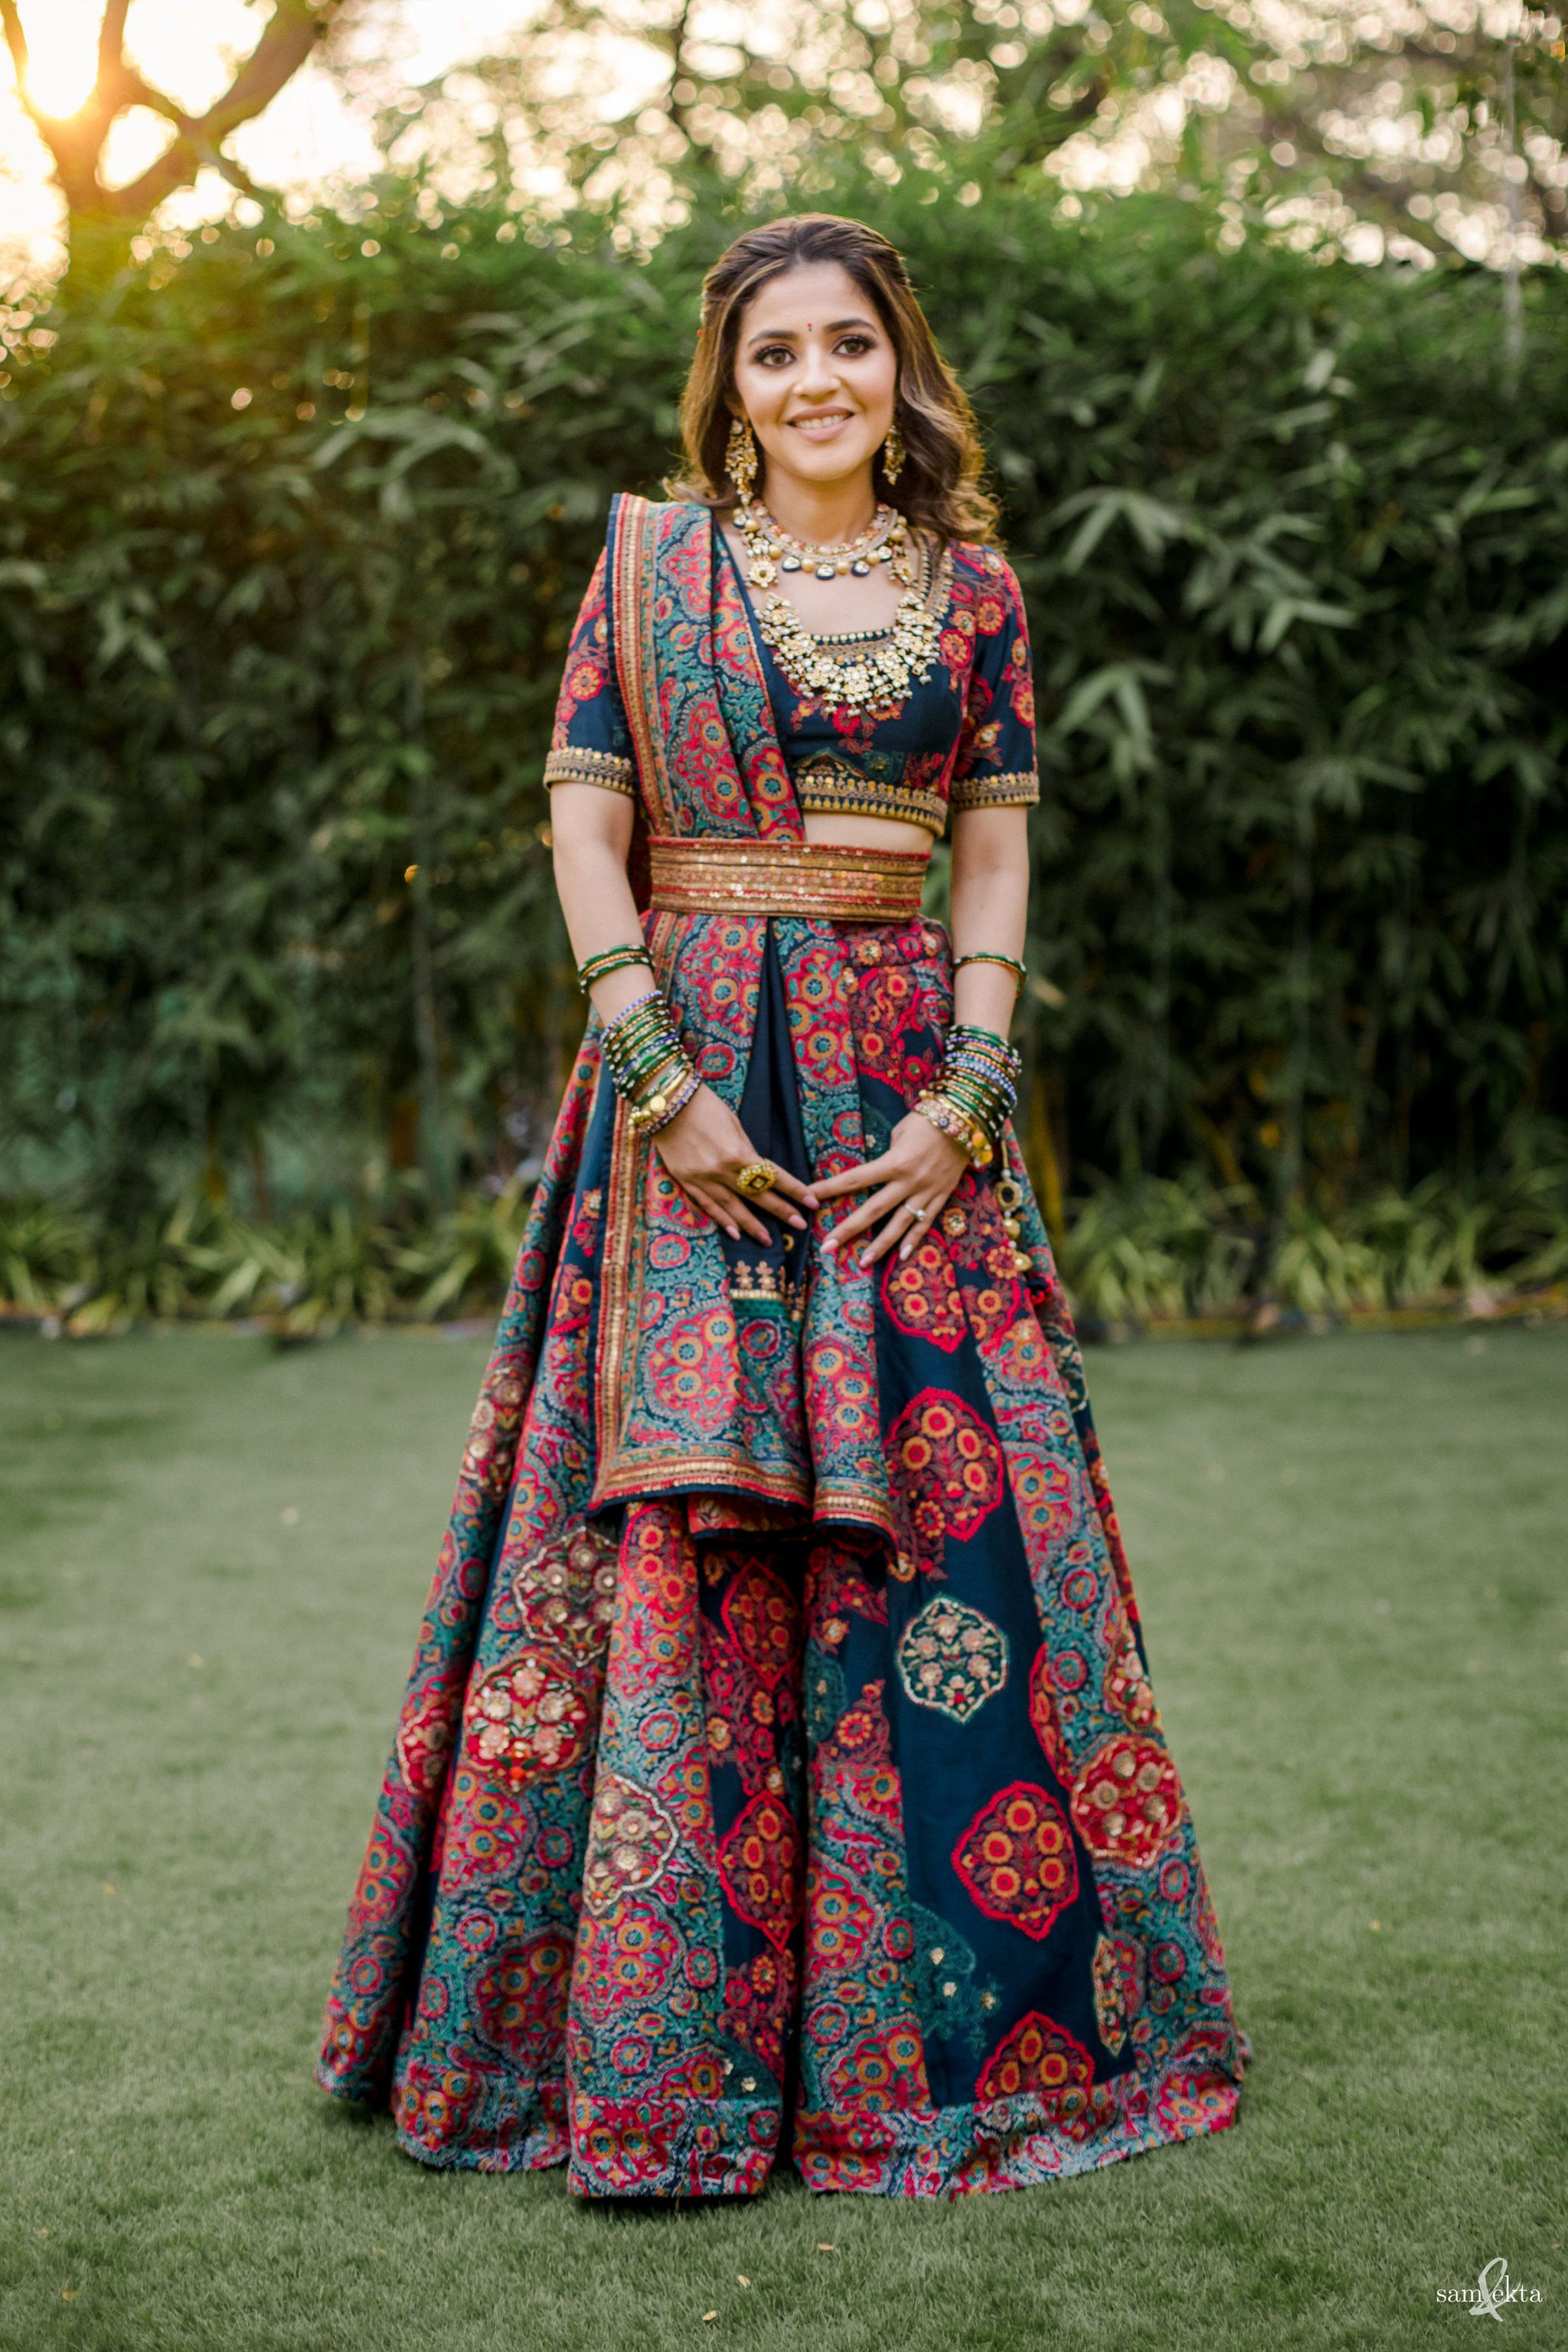 Mumbai Wedding With Bride In DroolWorthy Outfits